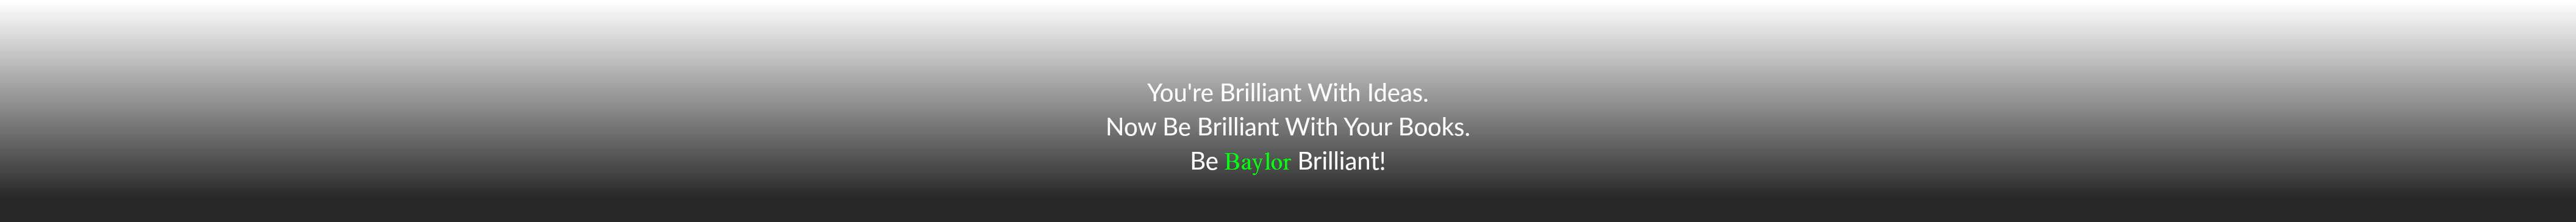 You're Brilliant With Ideas. Now Be Brilliant With Your Books. Be Baylor Brilliant!